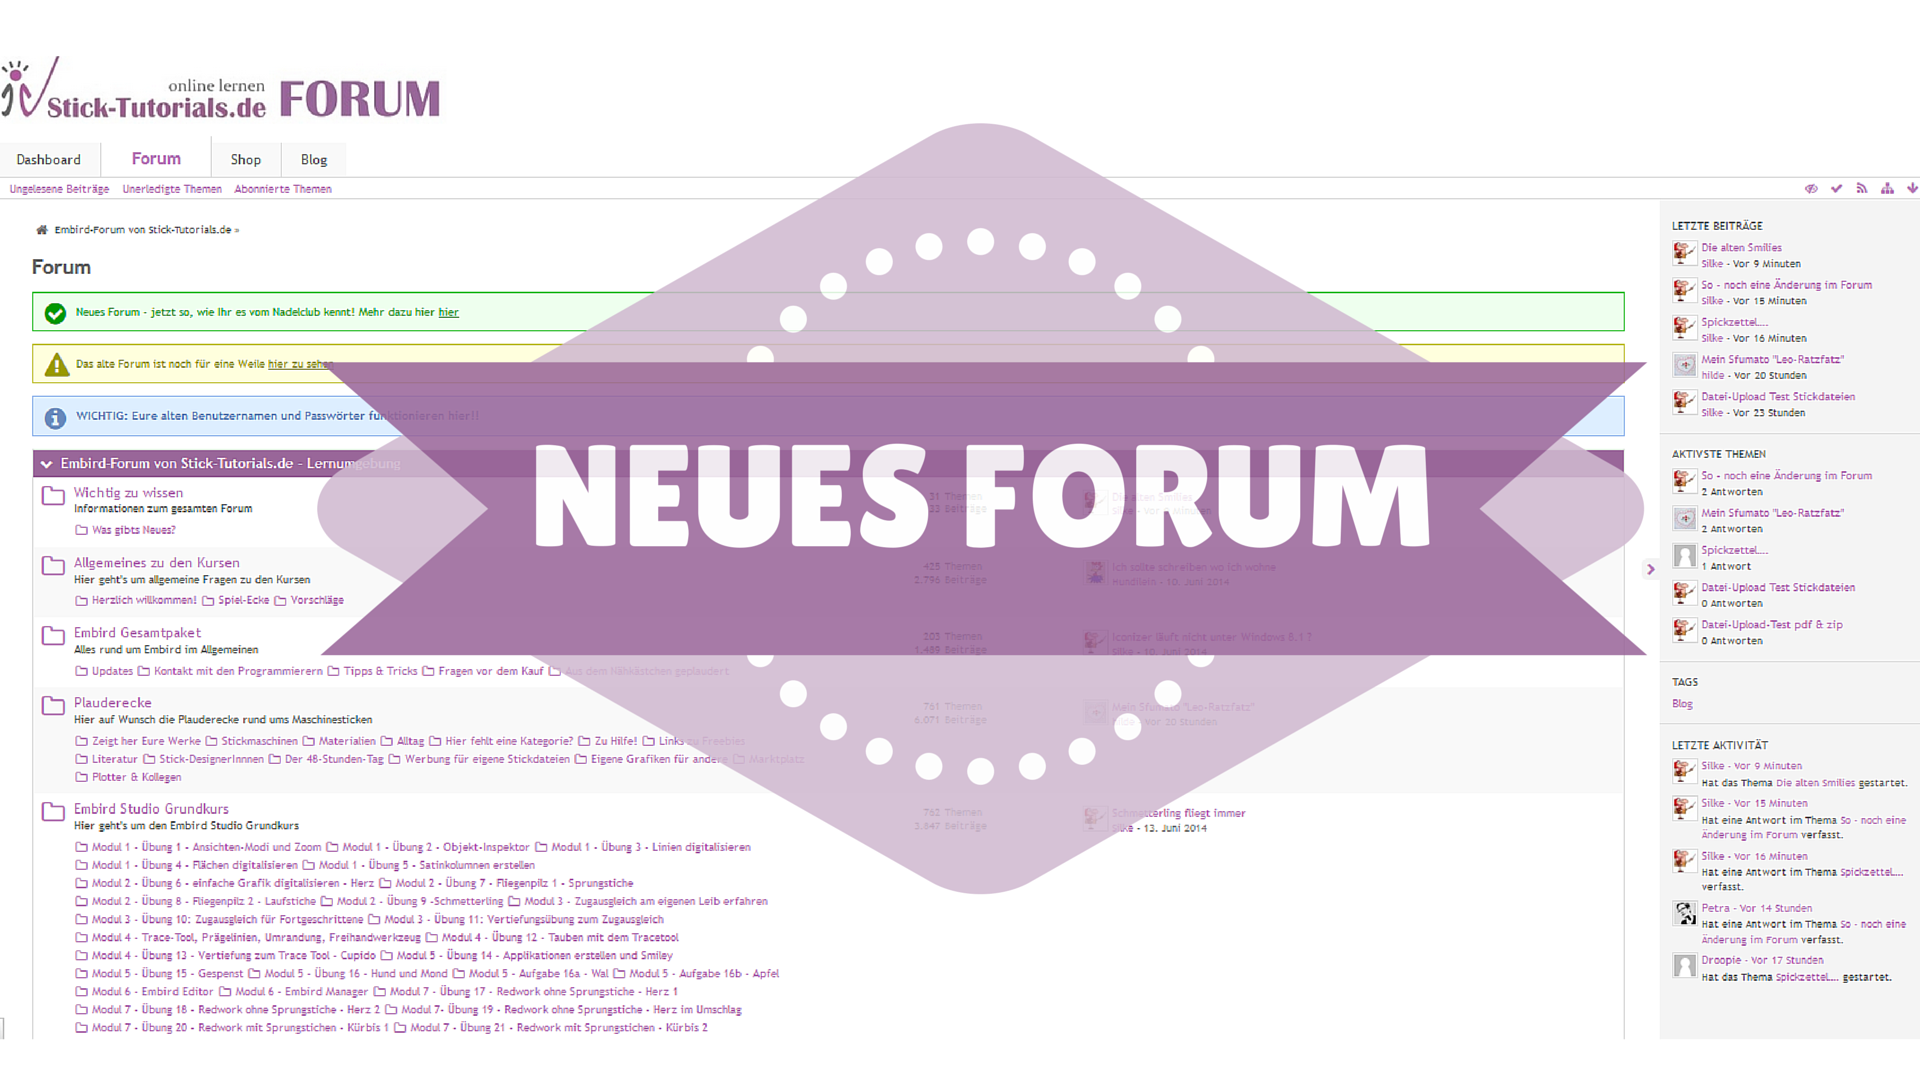 Neues Forum!